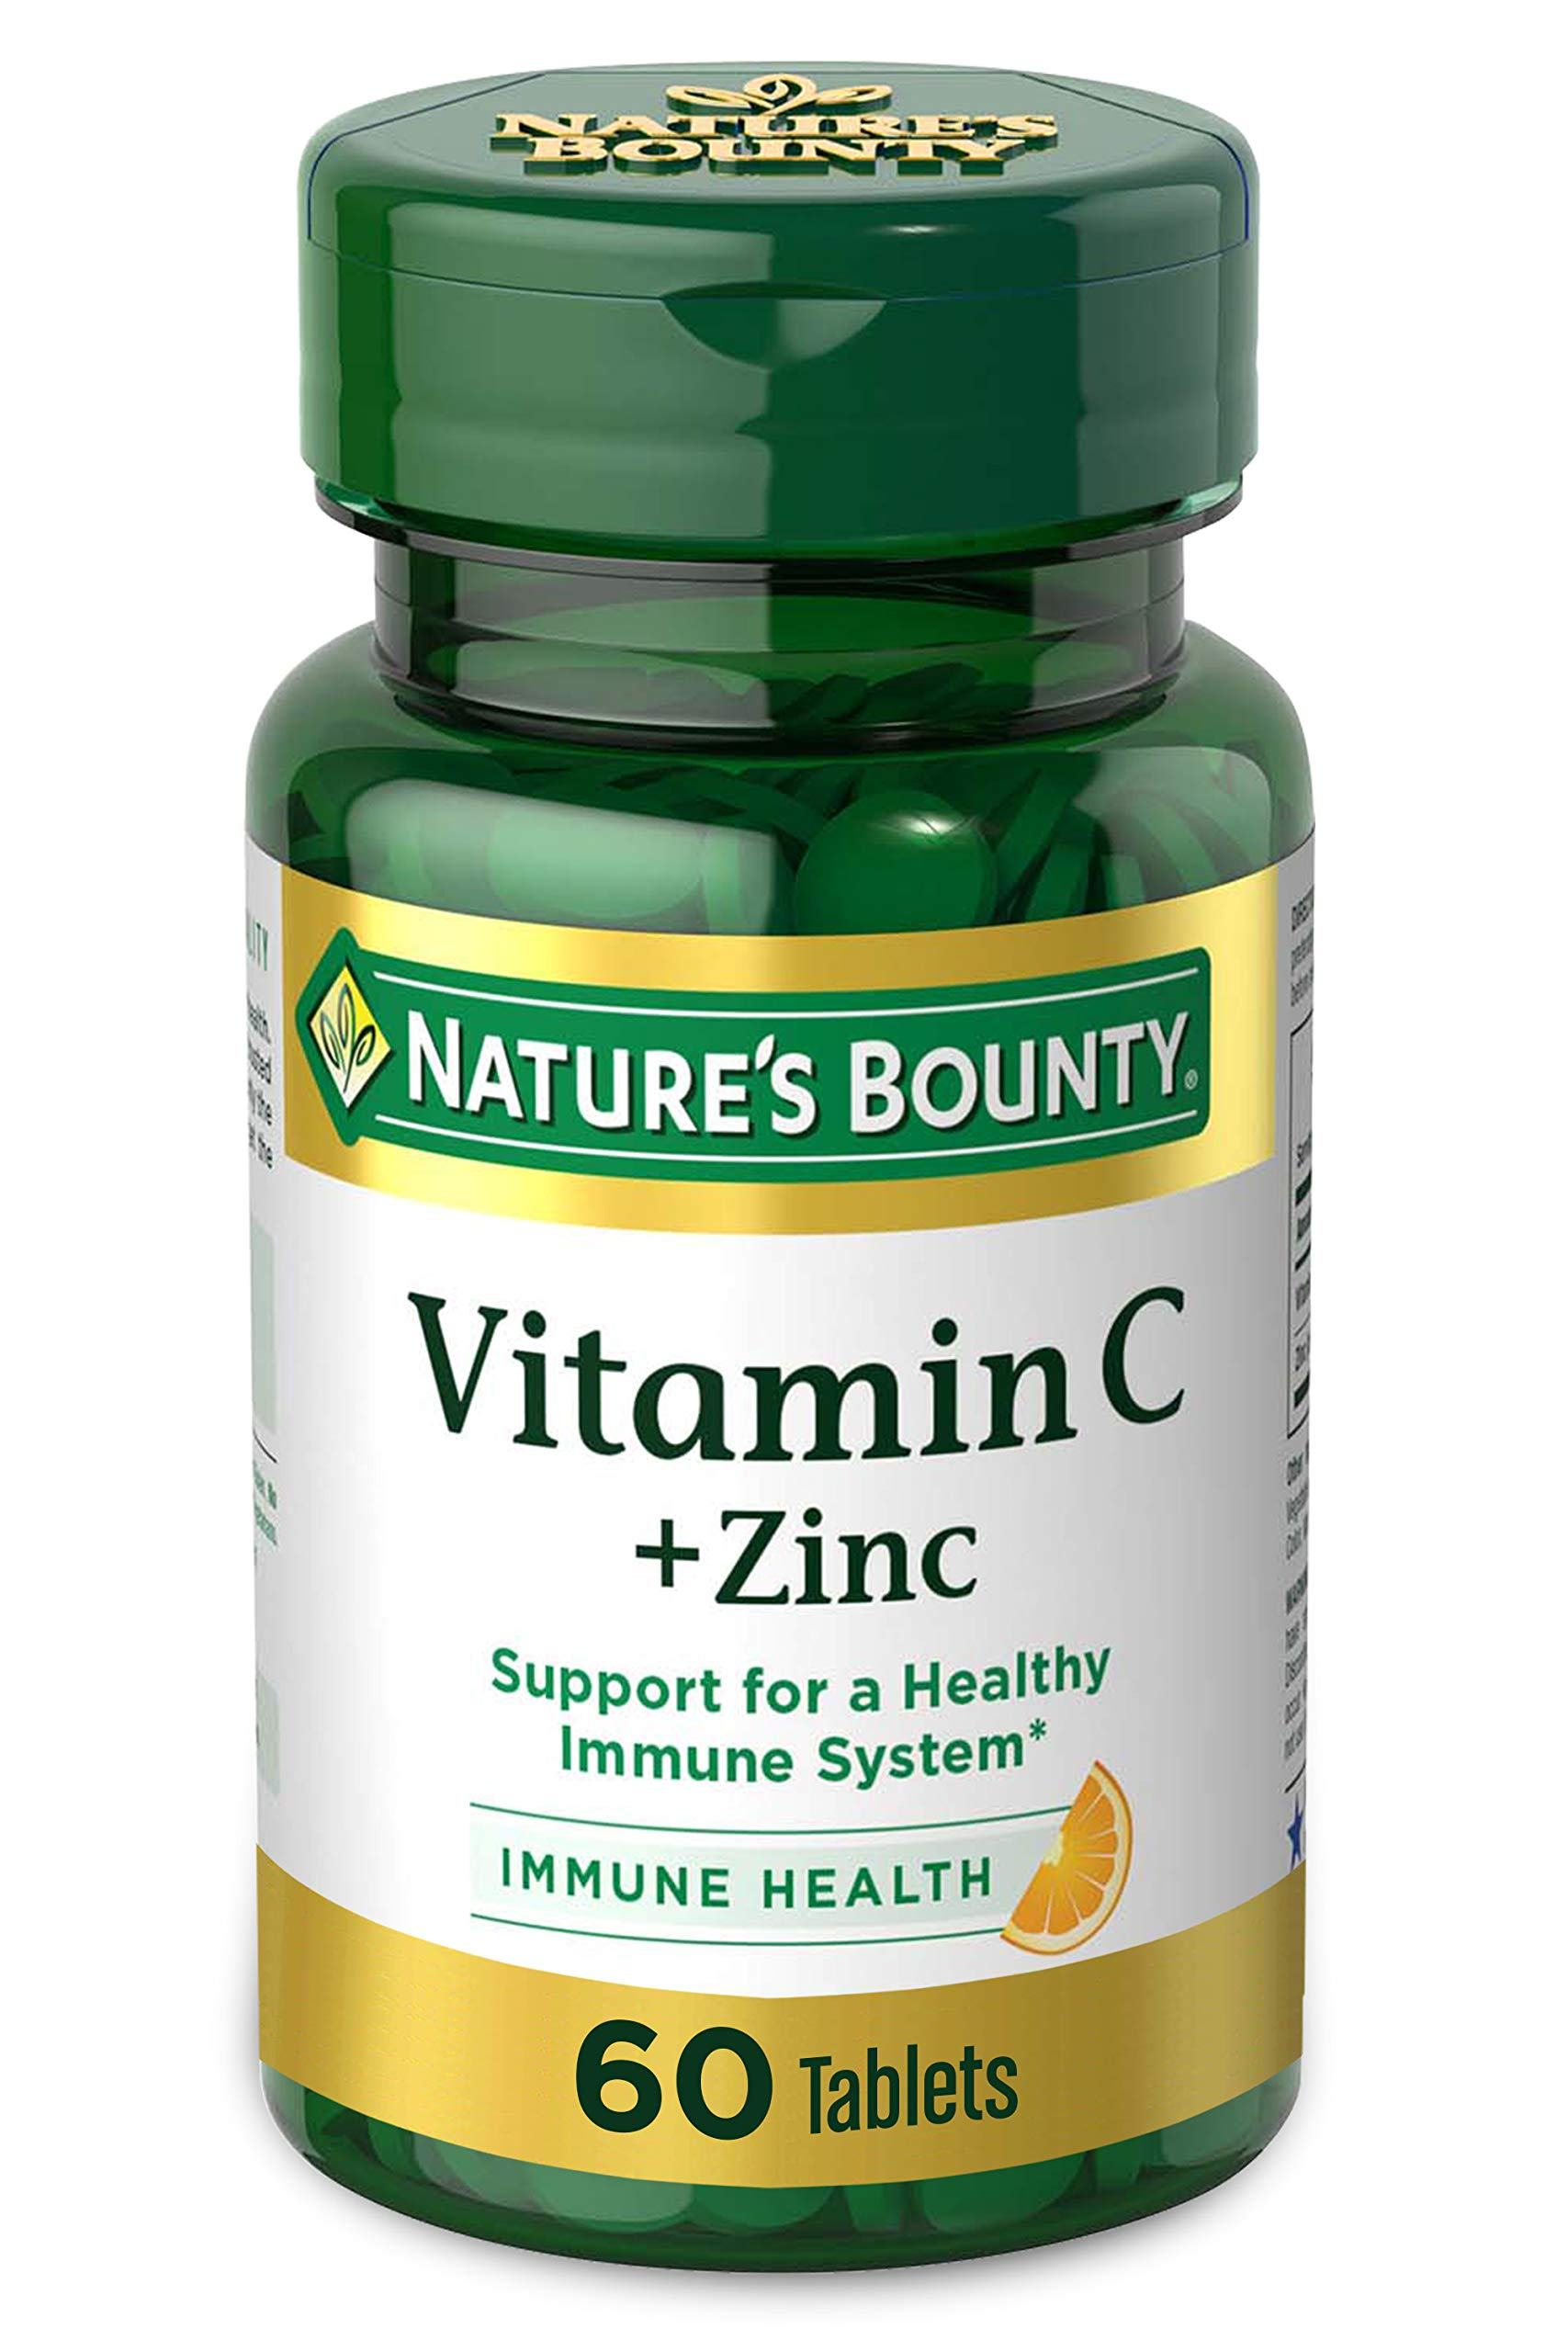 Vitamin C + Zinc by Nature's Bounty, Vitamin Supplement, Supports Immune Health, 60 mg, 60 Tablets